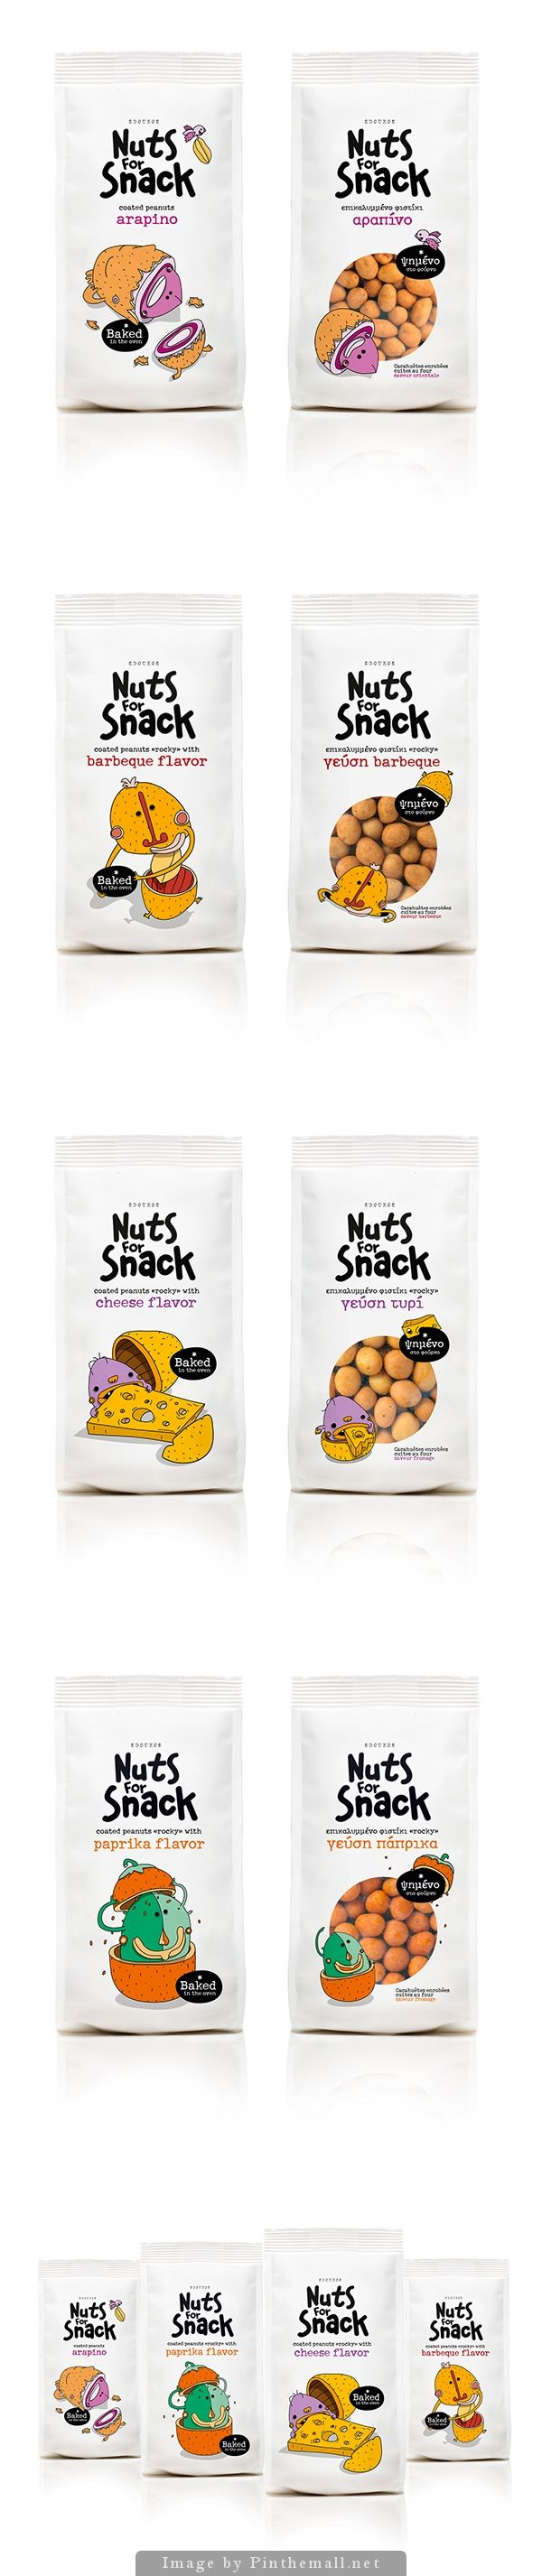 Nuts for Snack #packaging design inspiration. Cute drawings on the front.